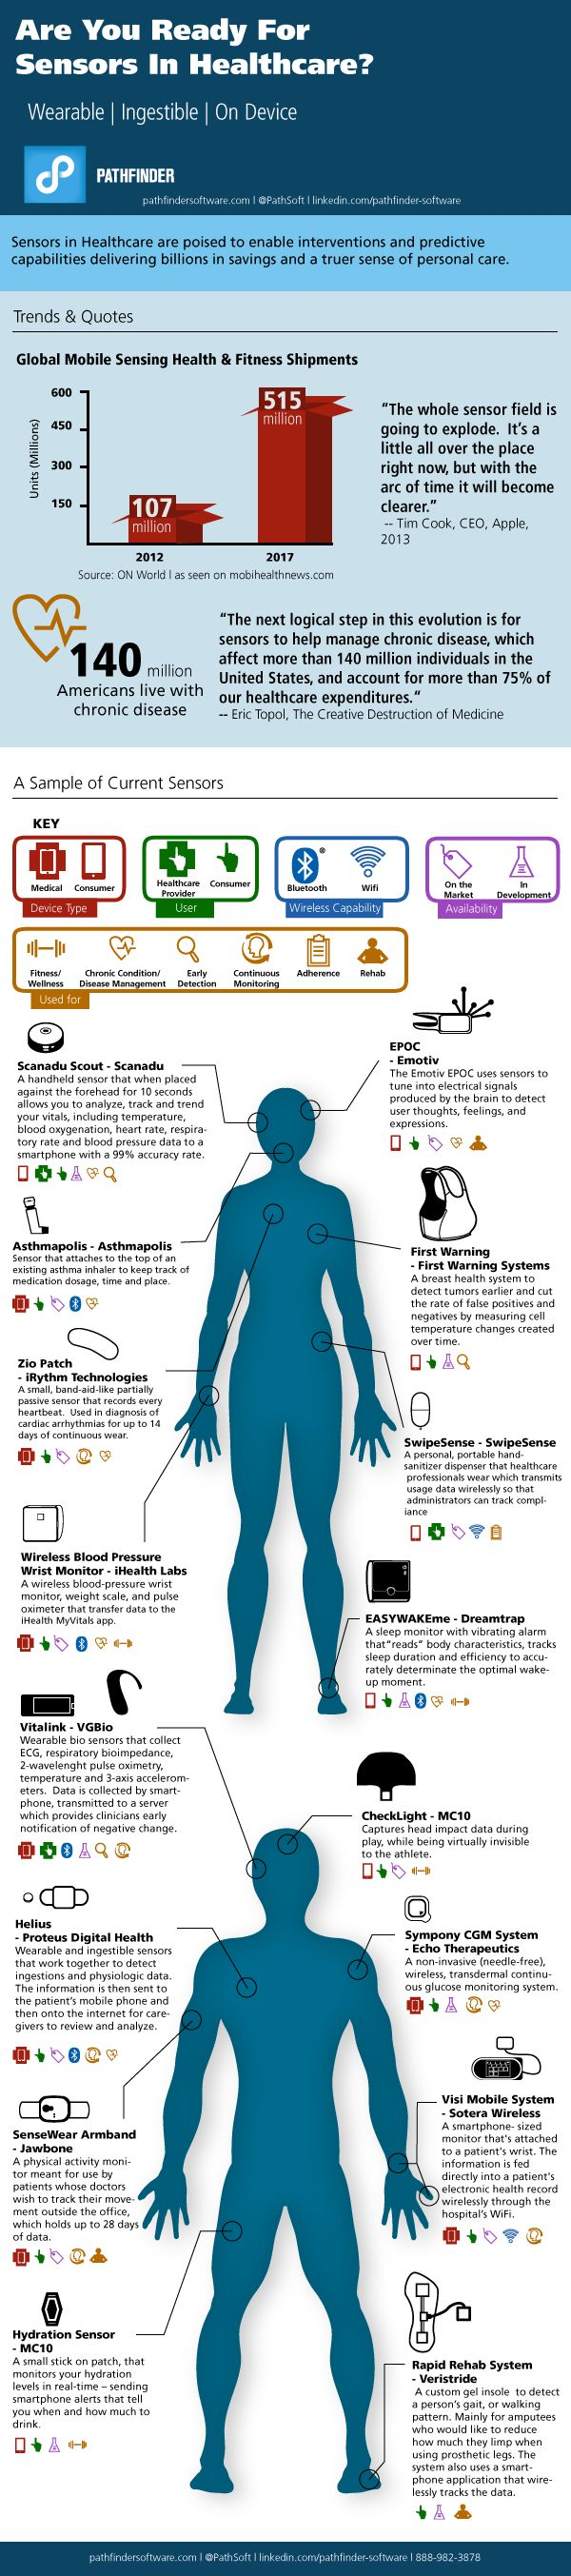 Infographic: Are you ready for sensors in healthcare? #infographic #tech #healthcare #sensors